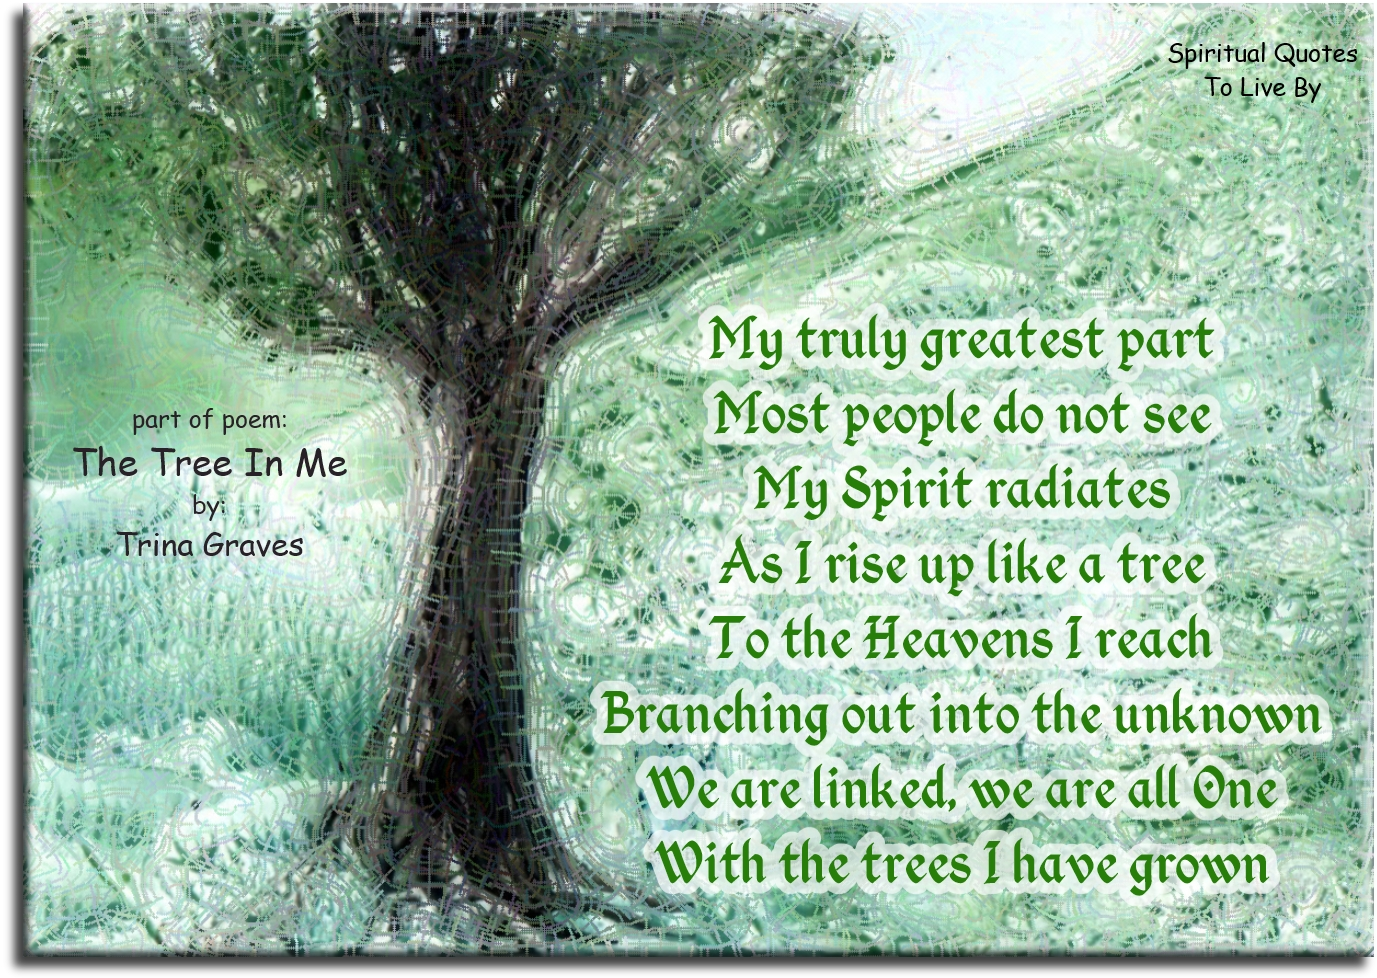 part of poem: The Tree In Me by Trina Graves - Spiritual Quotes To Live By